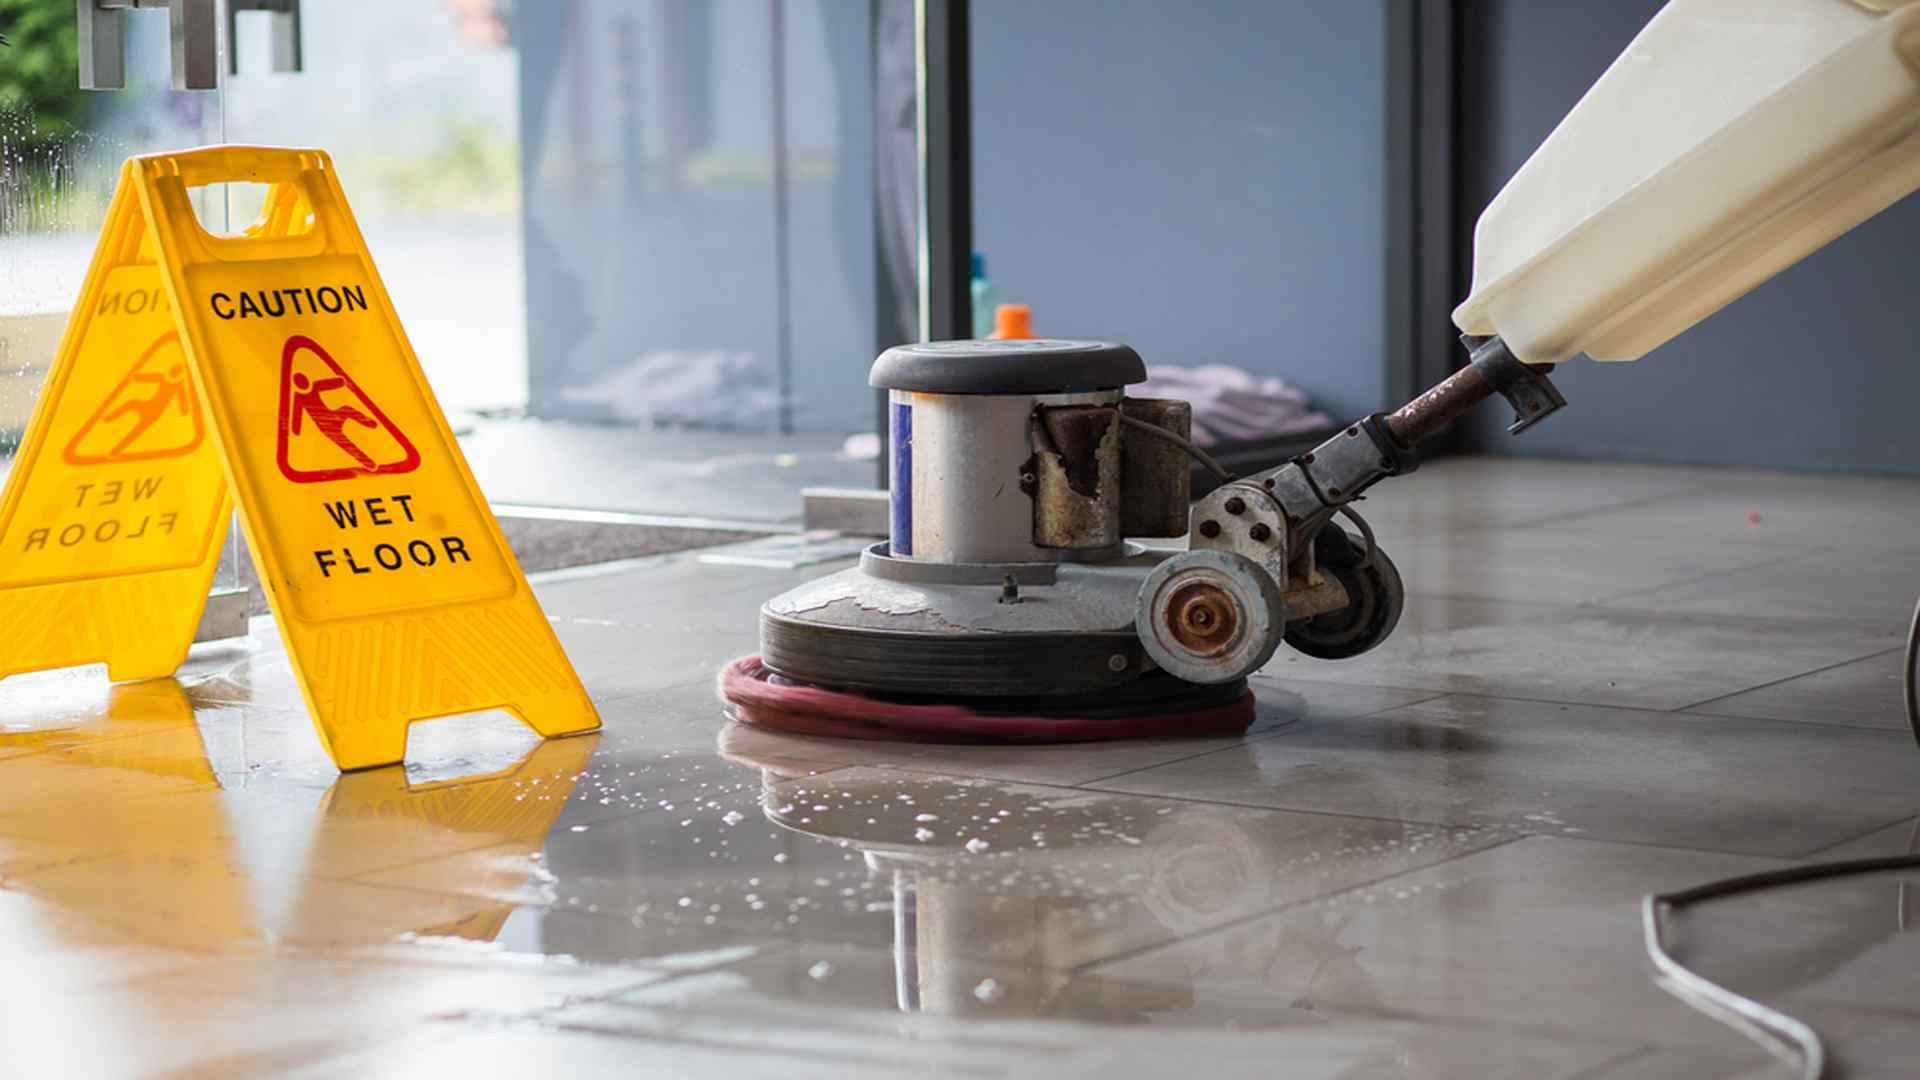 Machine Cleaning The Floors-Floor Cleaning-Commercial Cleaning Greensboro High Point NC-True Clean Experience-2307 West Cone Blvd Suite G, Greensboro NC 27408